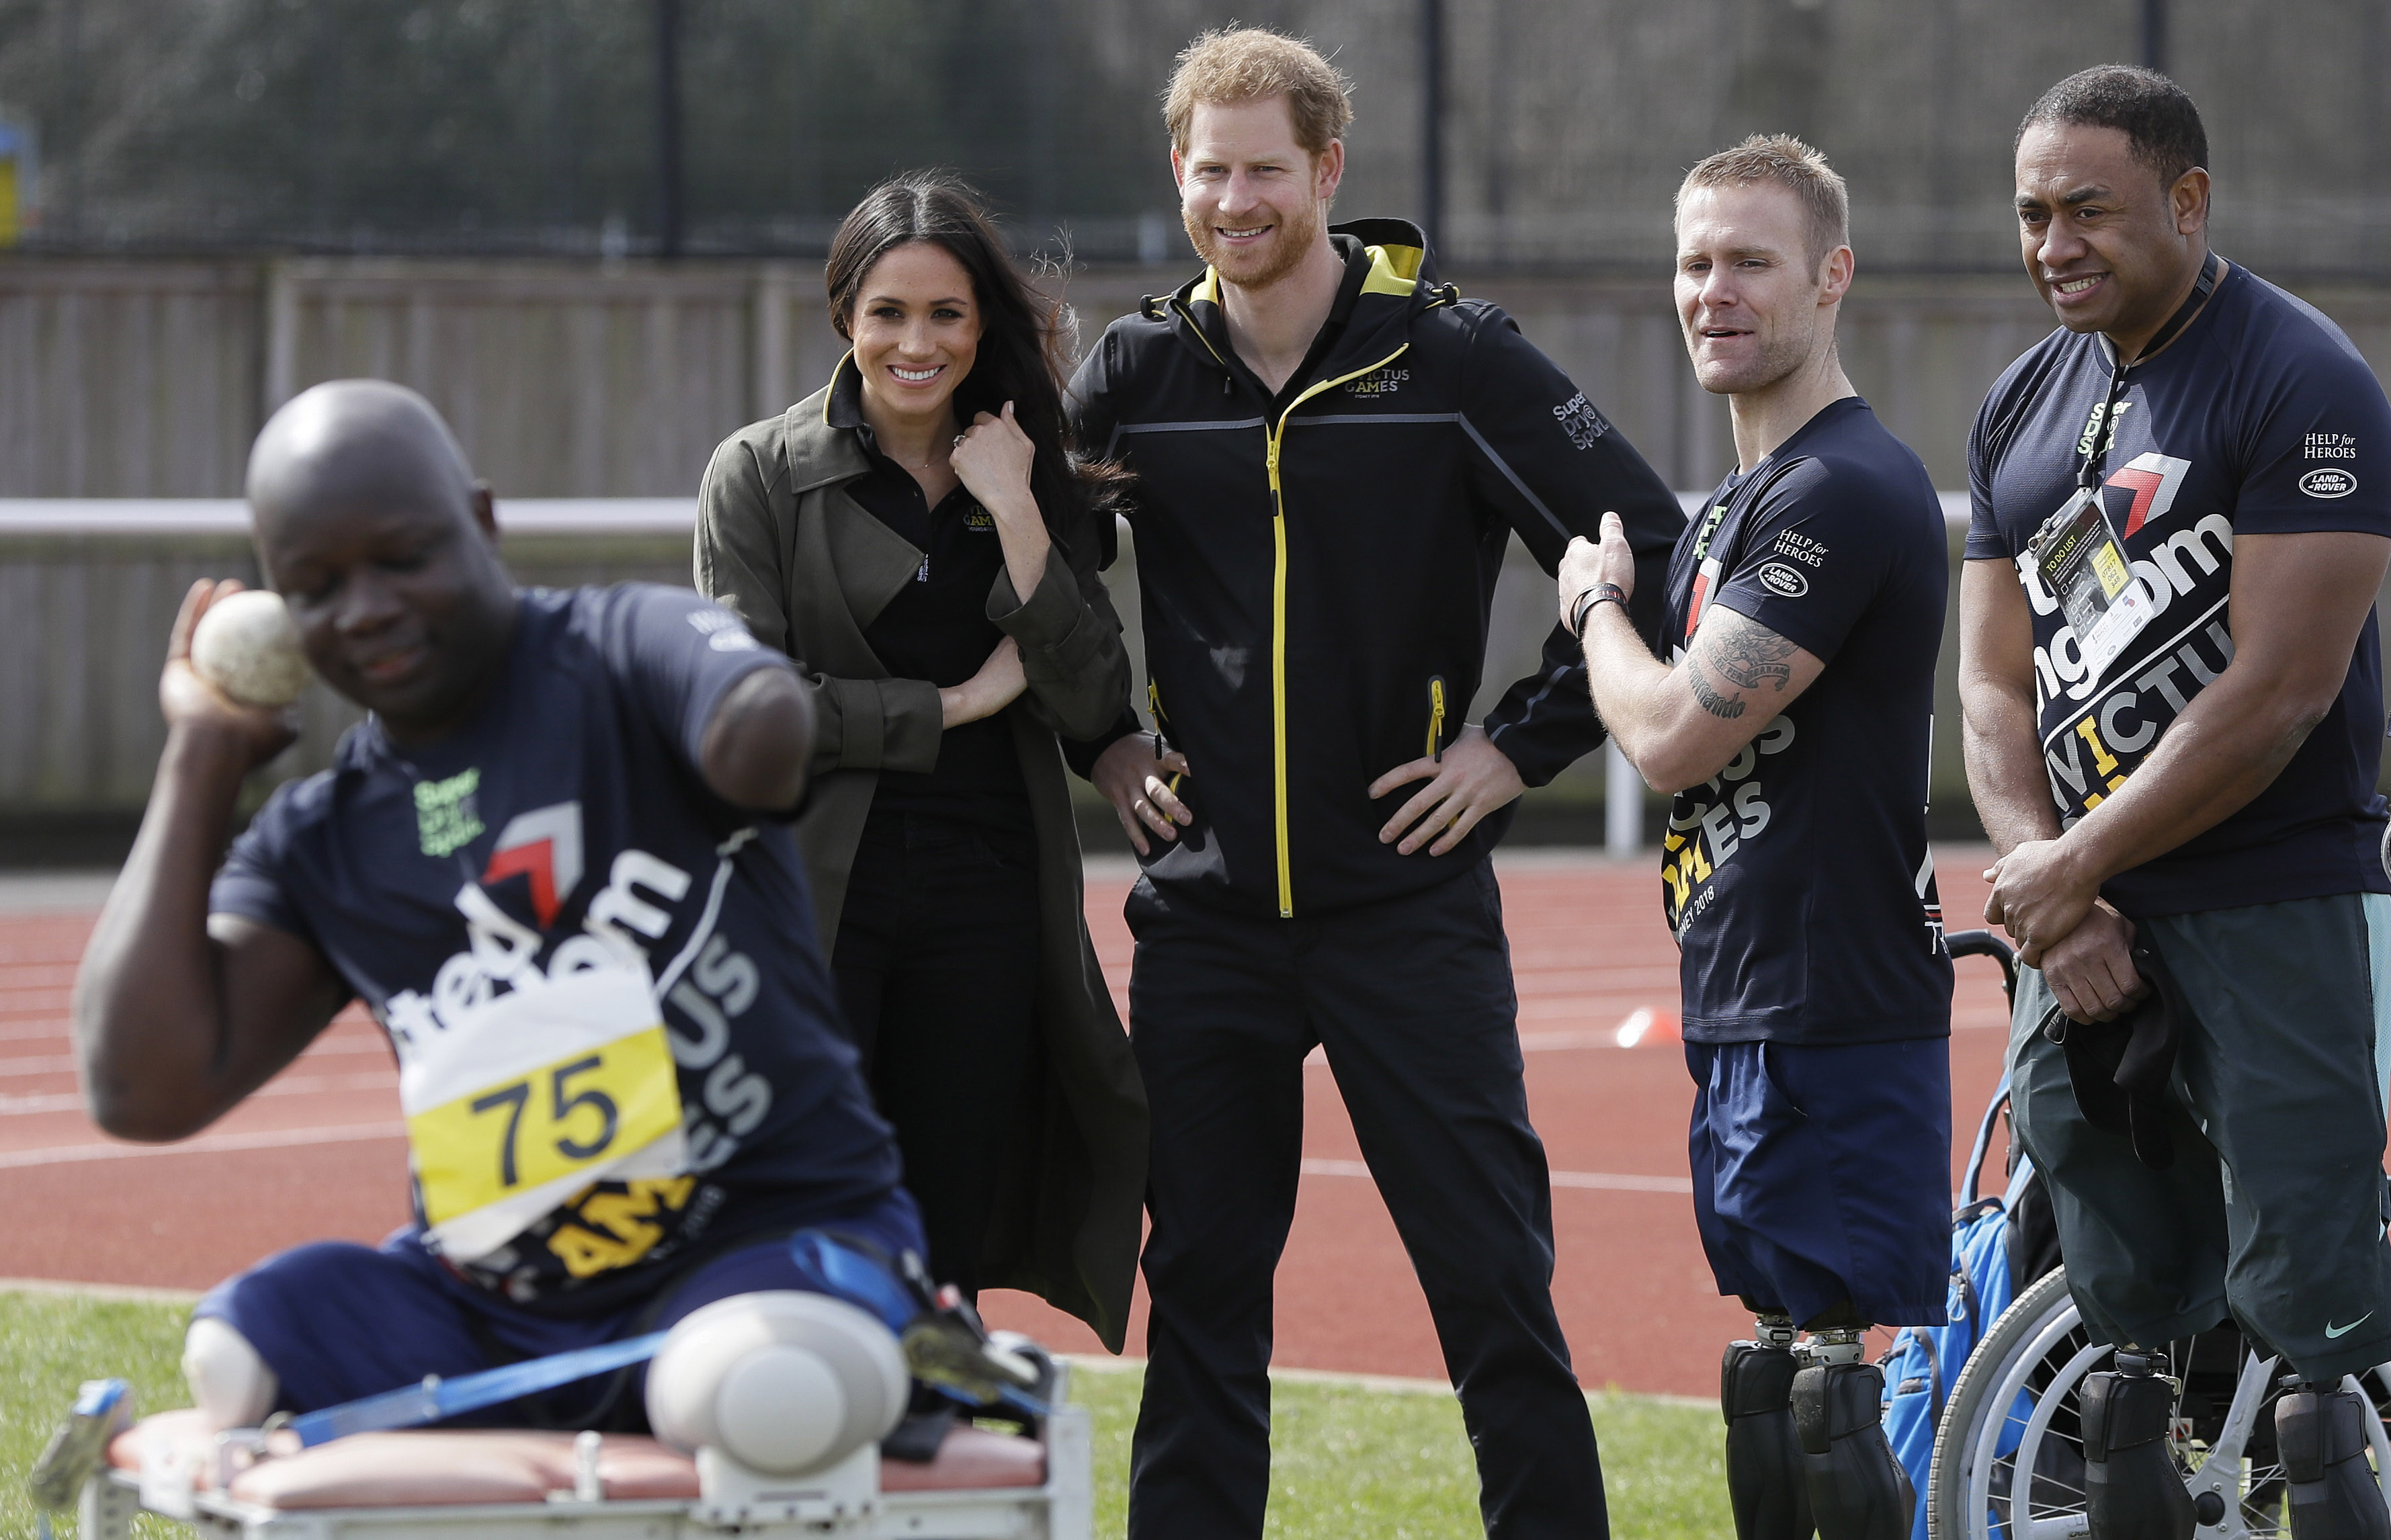 Superdry announced as an Official Supporter of the Invictus Games The Hague  2020 – Invictus Games Foundation